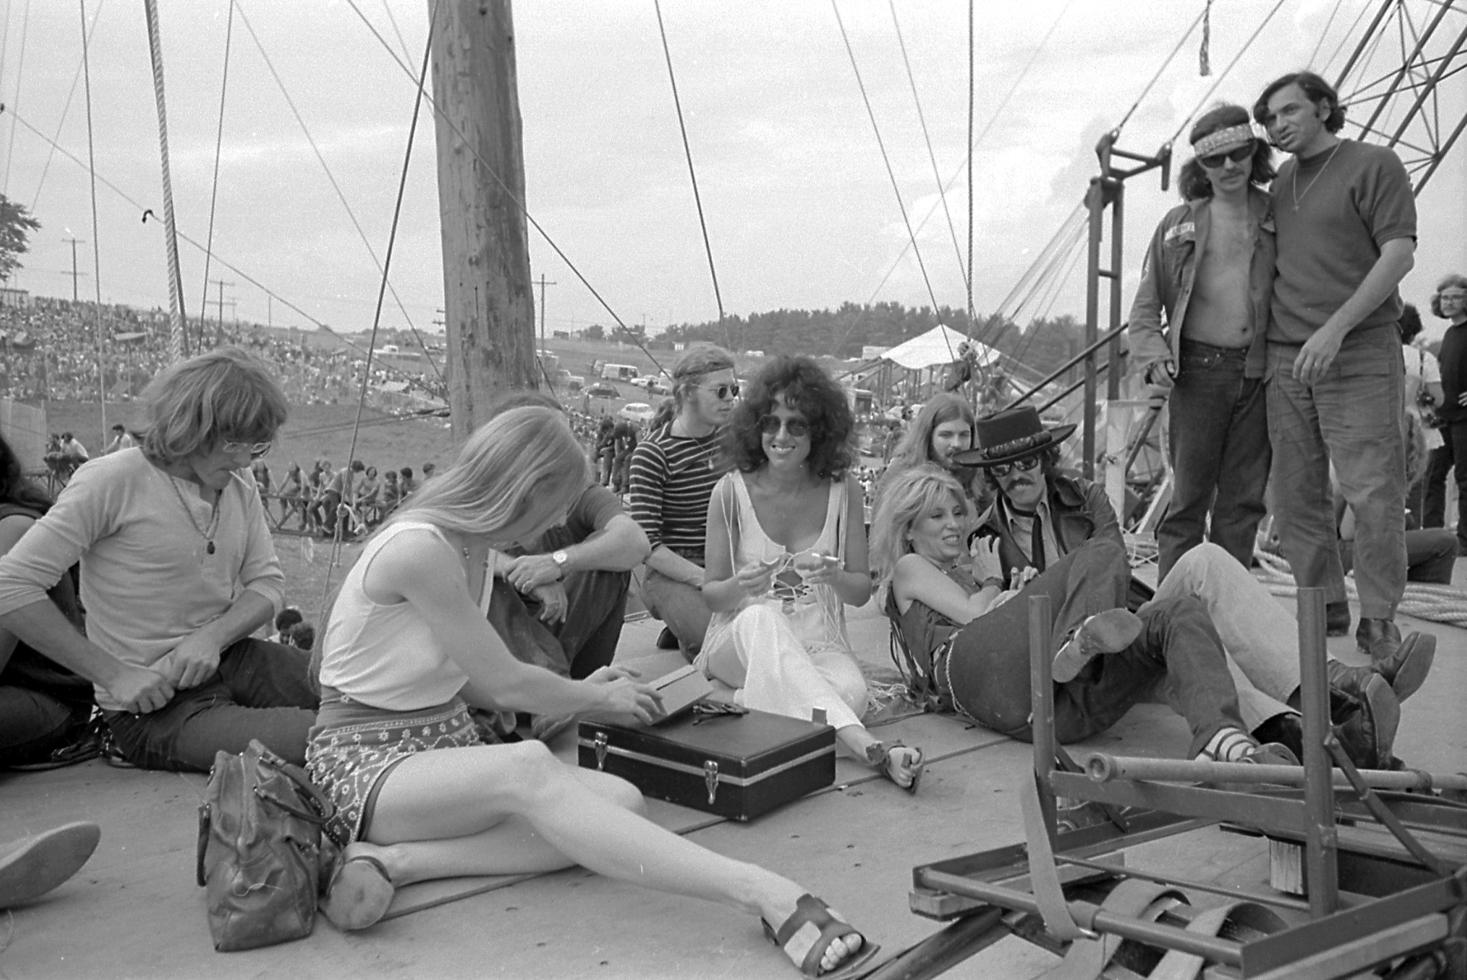 Graceslickwoodstock